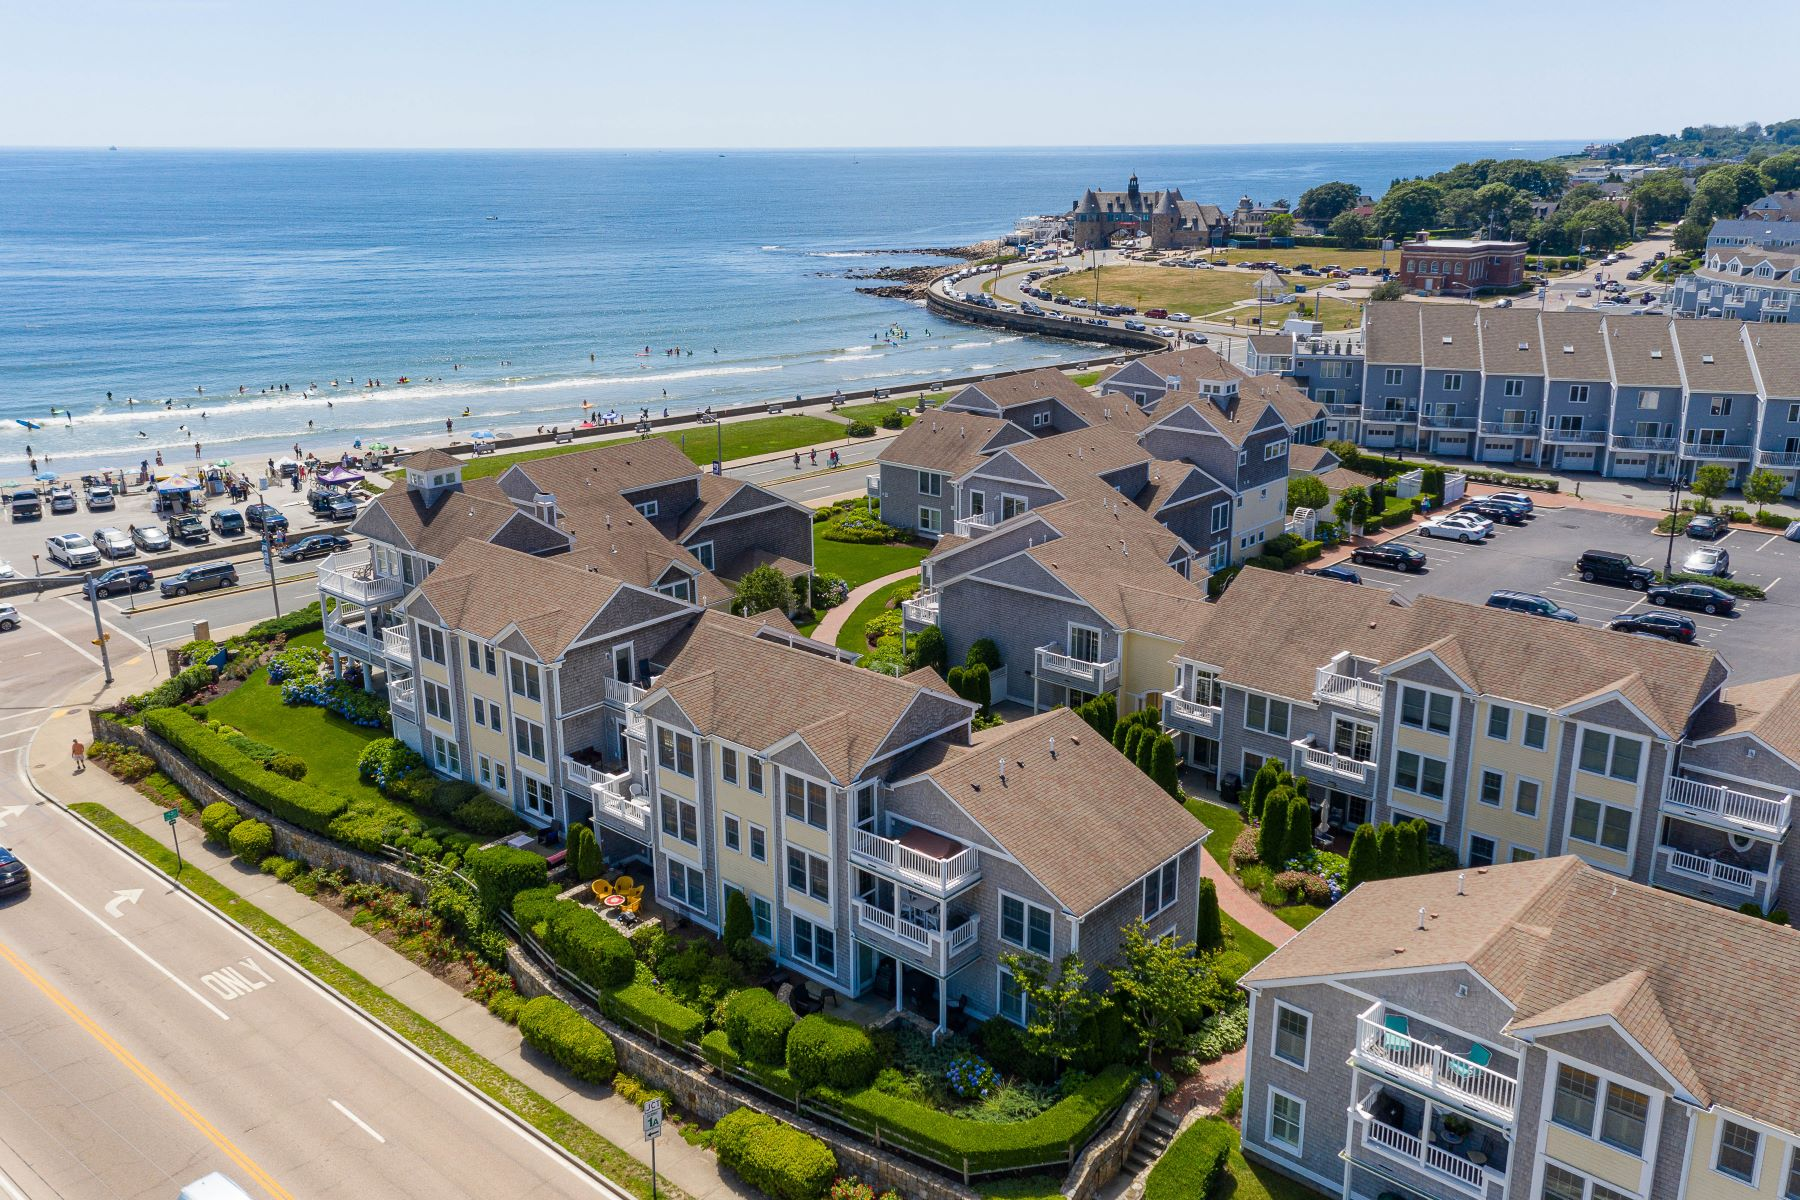 Condominiums for Sale at 20 Narragansett Avenue, #211, Narragansett, RI 20 Narragansett Avenue, 211 Narragansett, Rhode Island 02882 United States